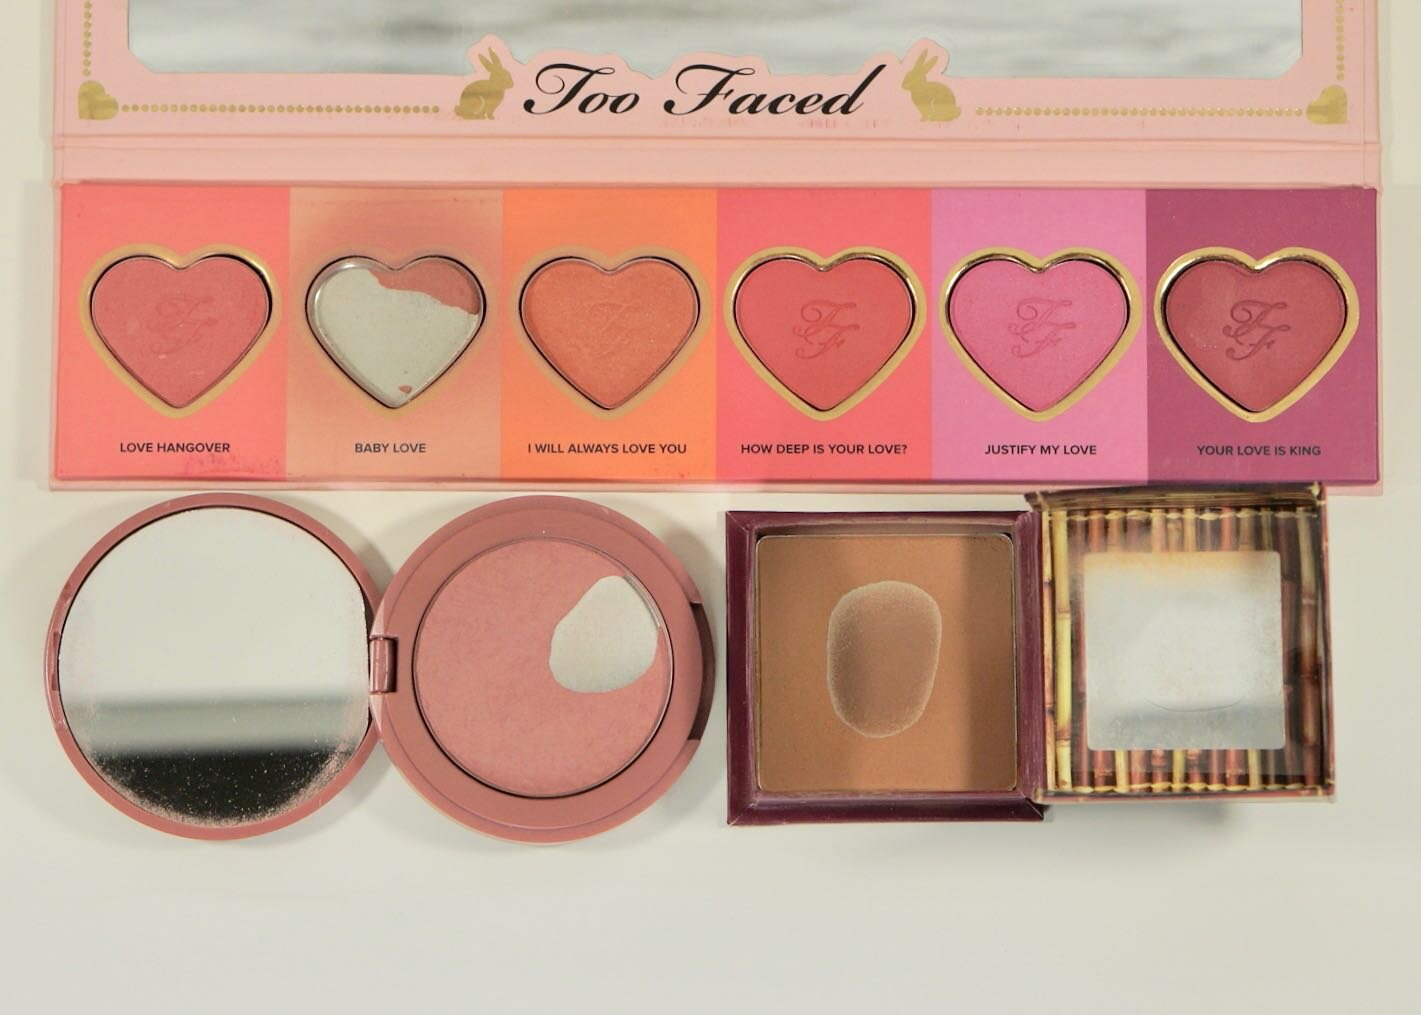 Products I've Hit Pan On-Face ProductsProducts I've Hit Pan OnDSC02513.jpg